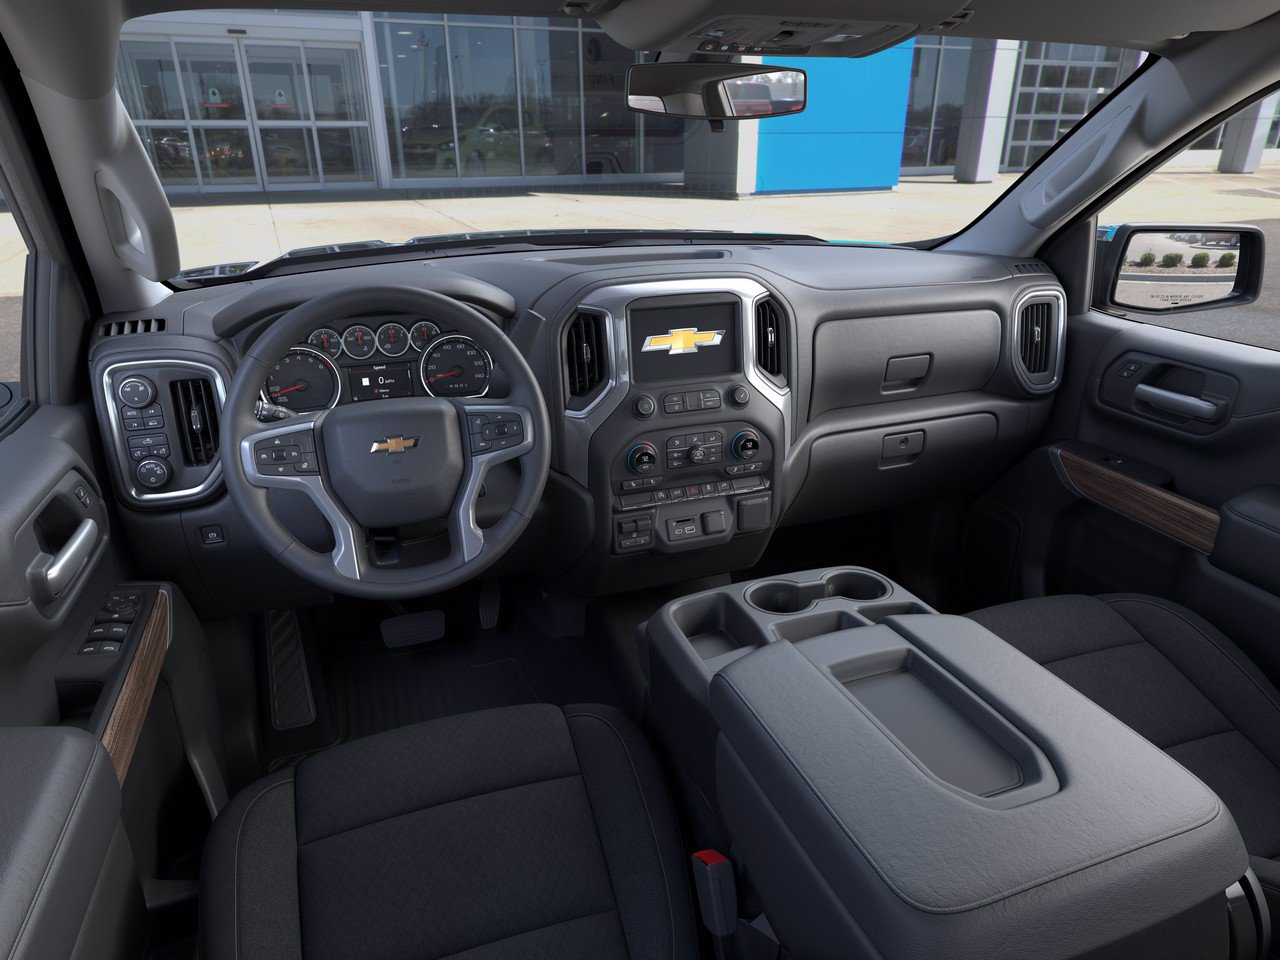 2020 Chevrolet Silverado 1500 Crew Cab 4x4, Pickup #C201522 - photo 10